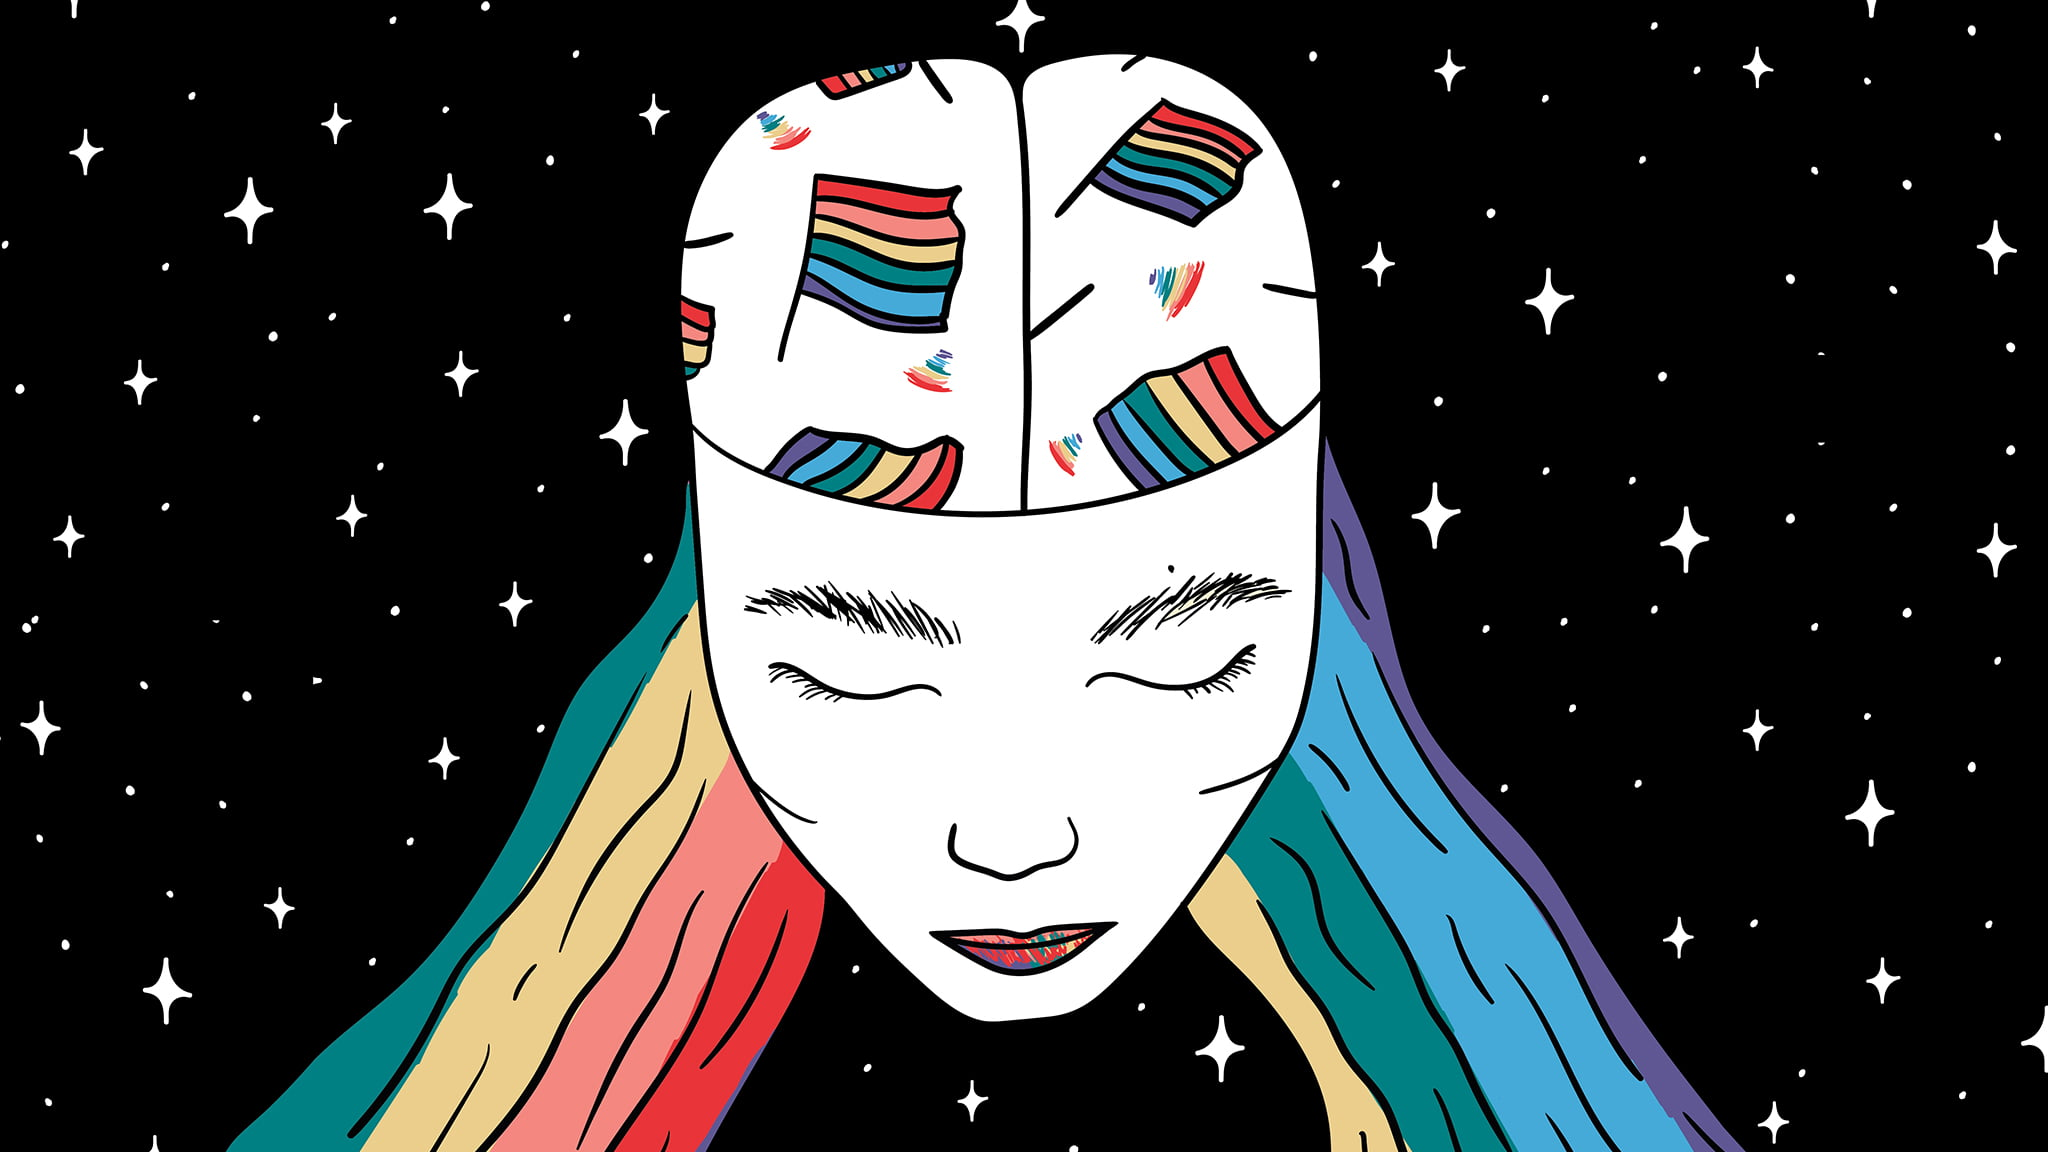 Abstract Illustration Of A Queer Woman's Face With Her Eyes Closed And Rainbow Colored Hair And Head Scarf With A Star Background Signifying Queer Loneliness